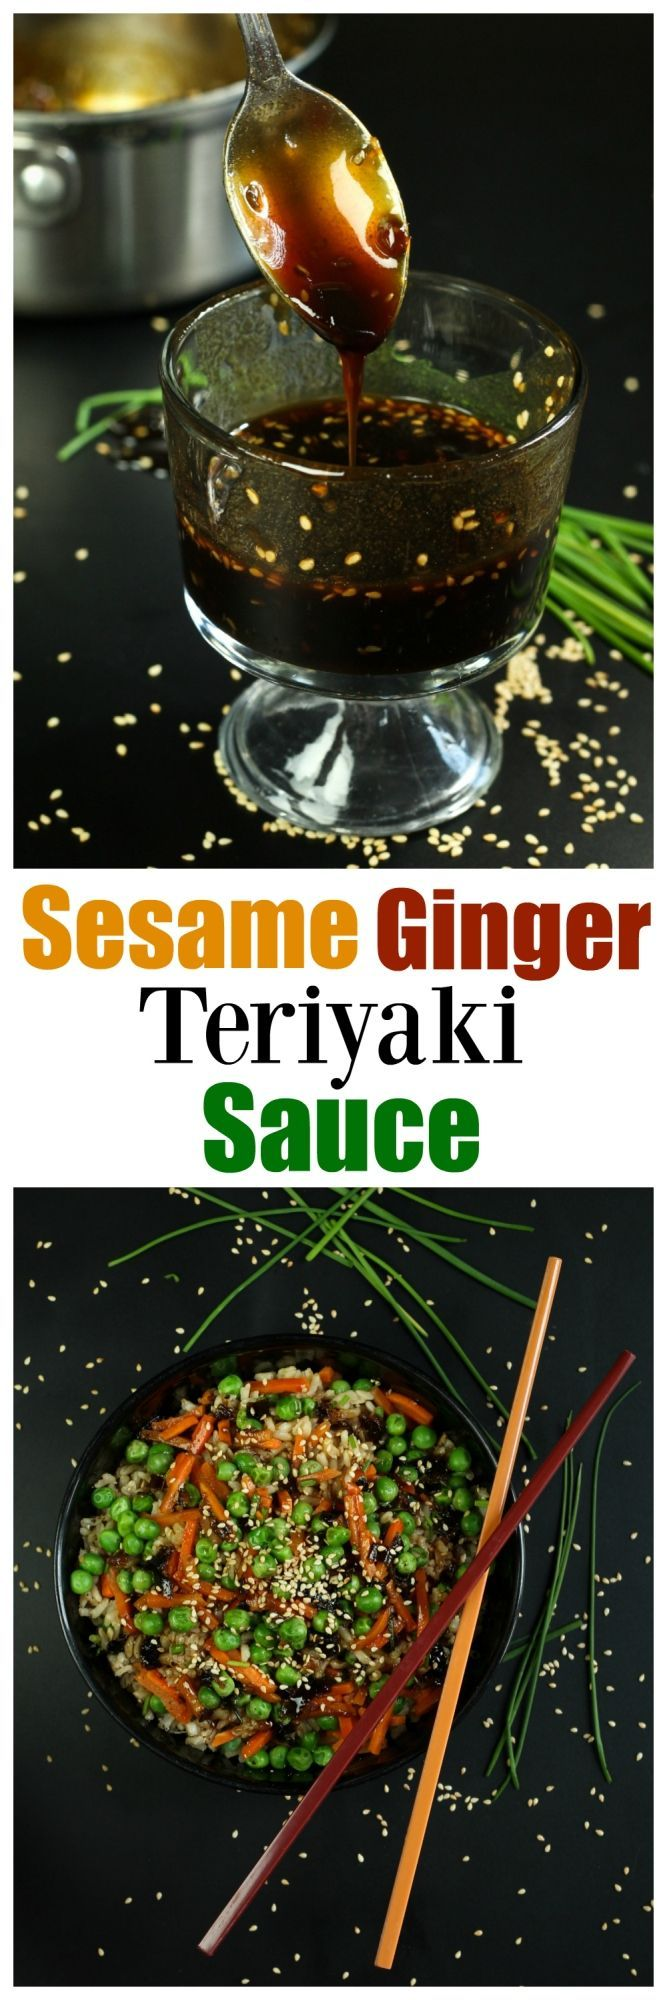 Homemade Sesame Ginger Teriyaki Sauce that will blow your mind. Fresh ginger, fresh garlic, fresh chives and toasted sesame seeds make this better than any storebought version out there.